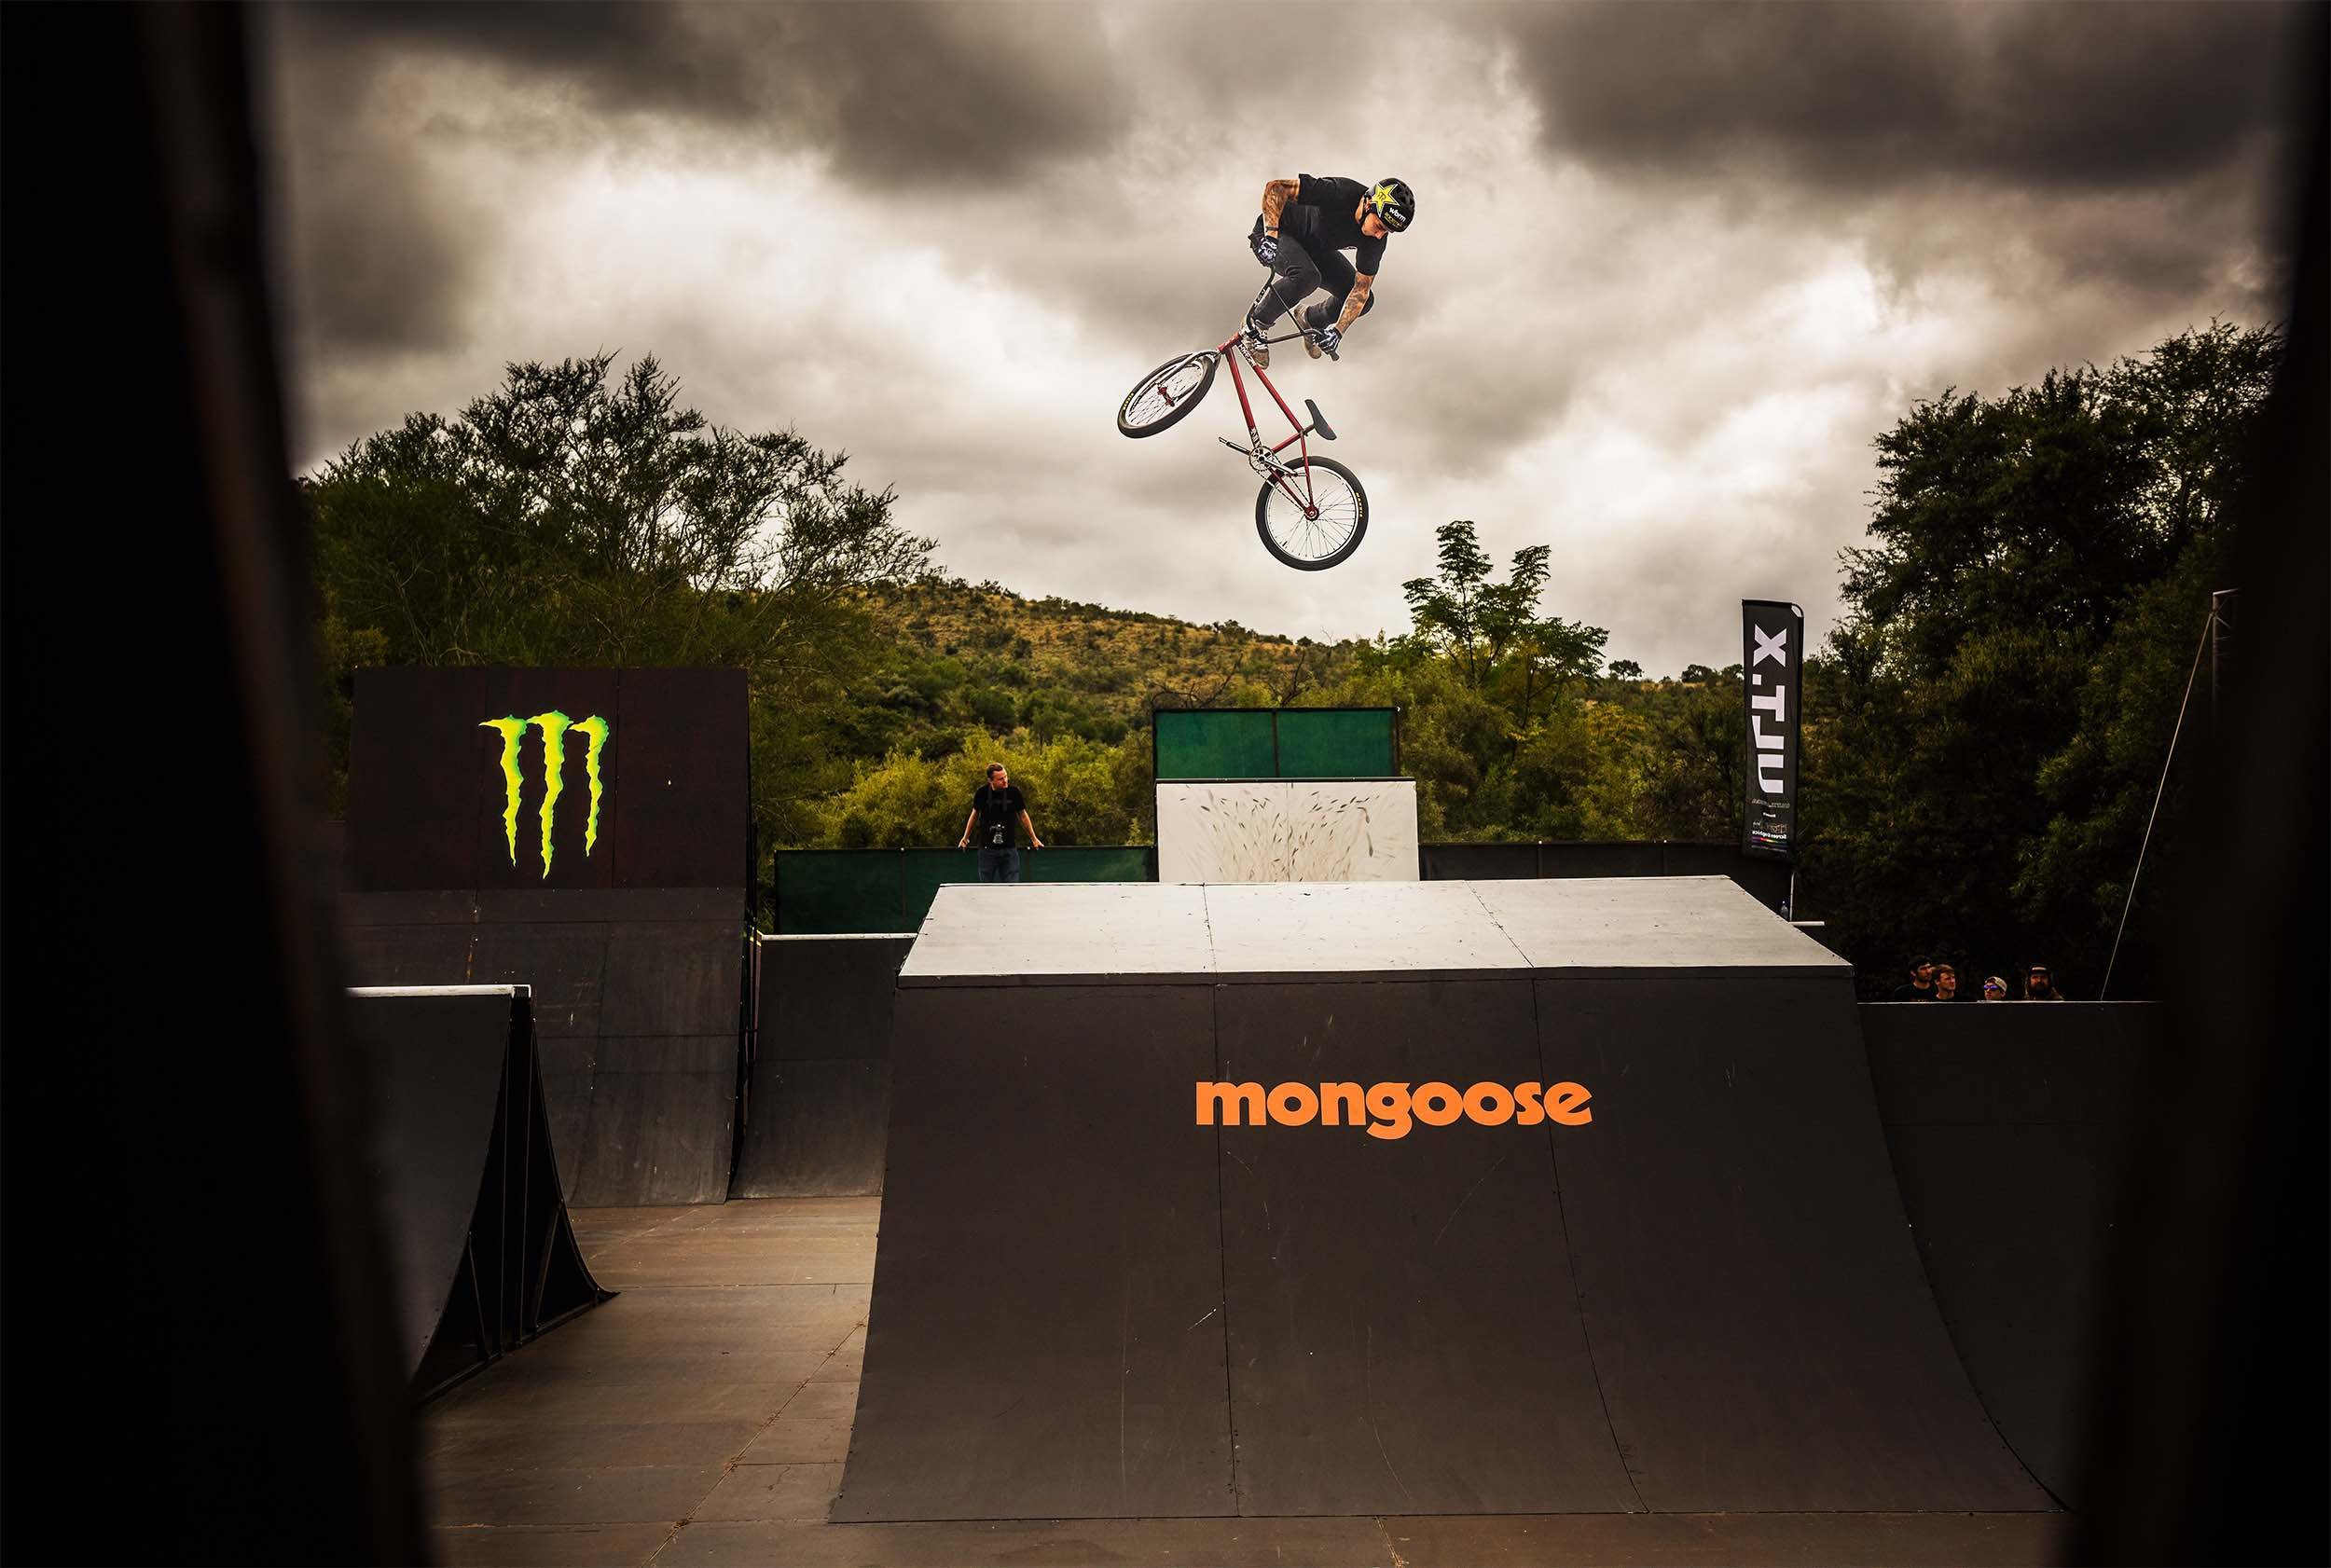 Logan Martin talks to us about his BMX career and competing in South Africa